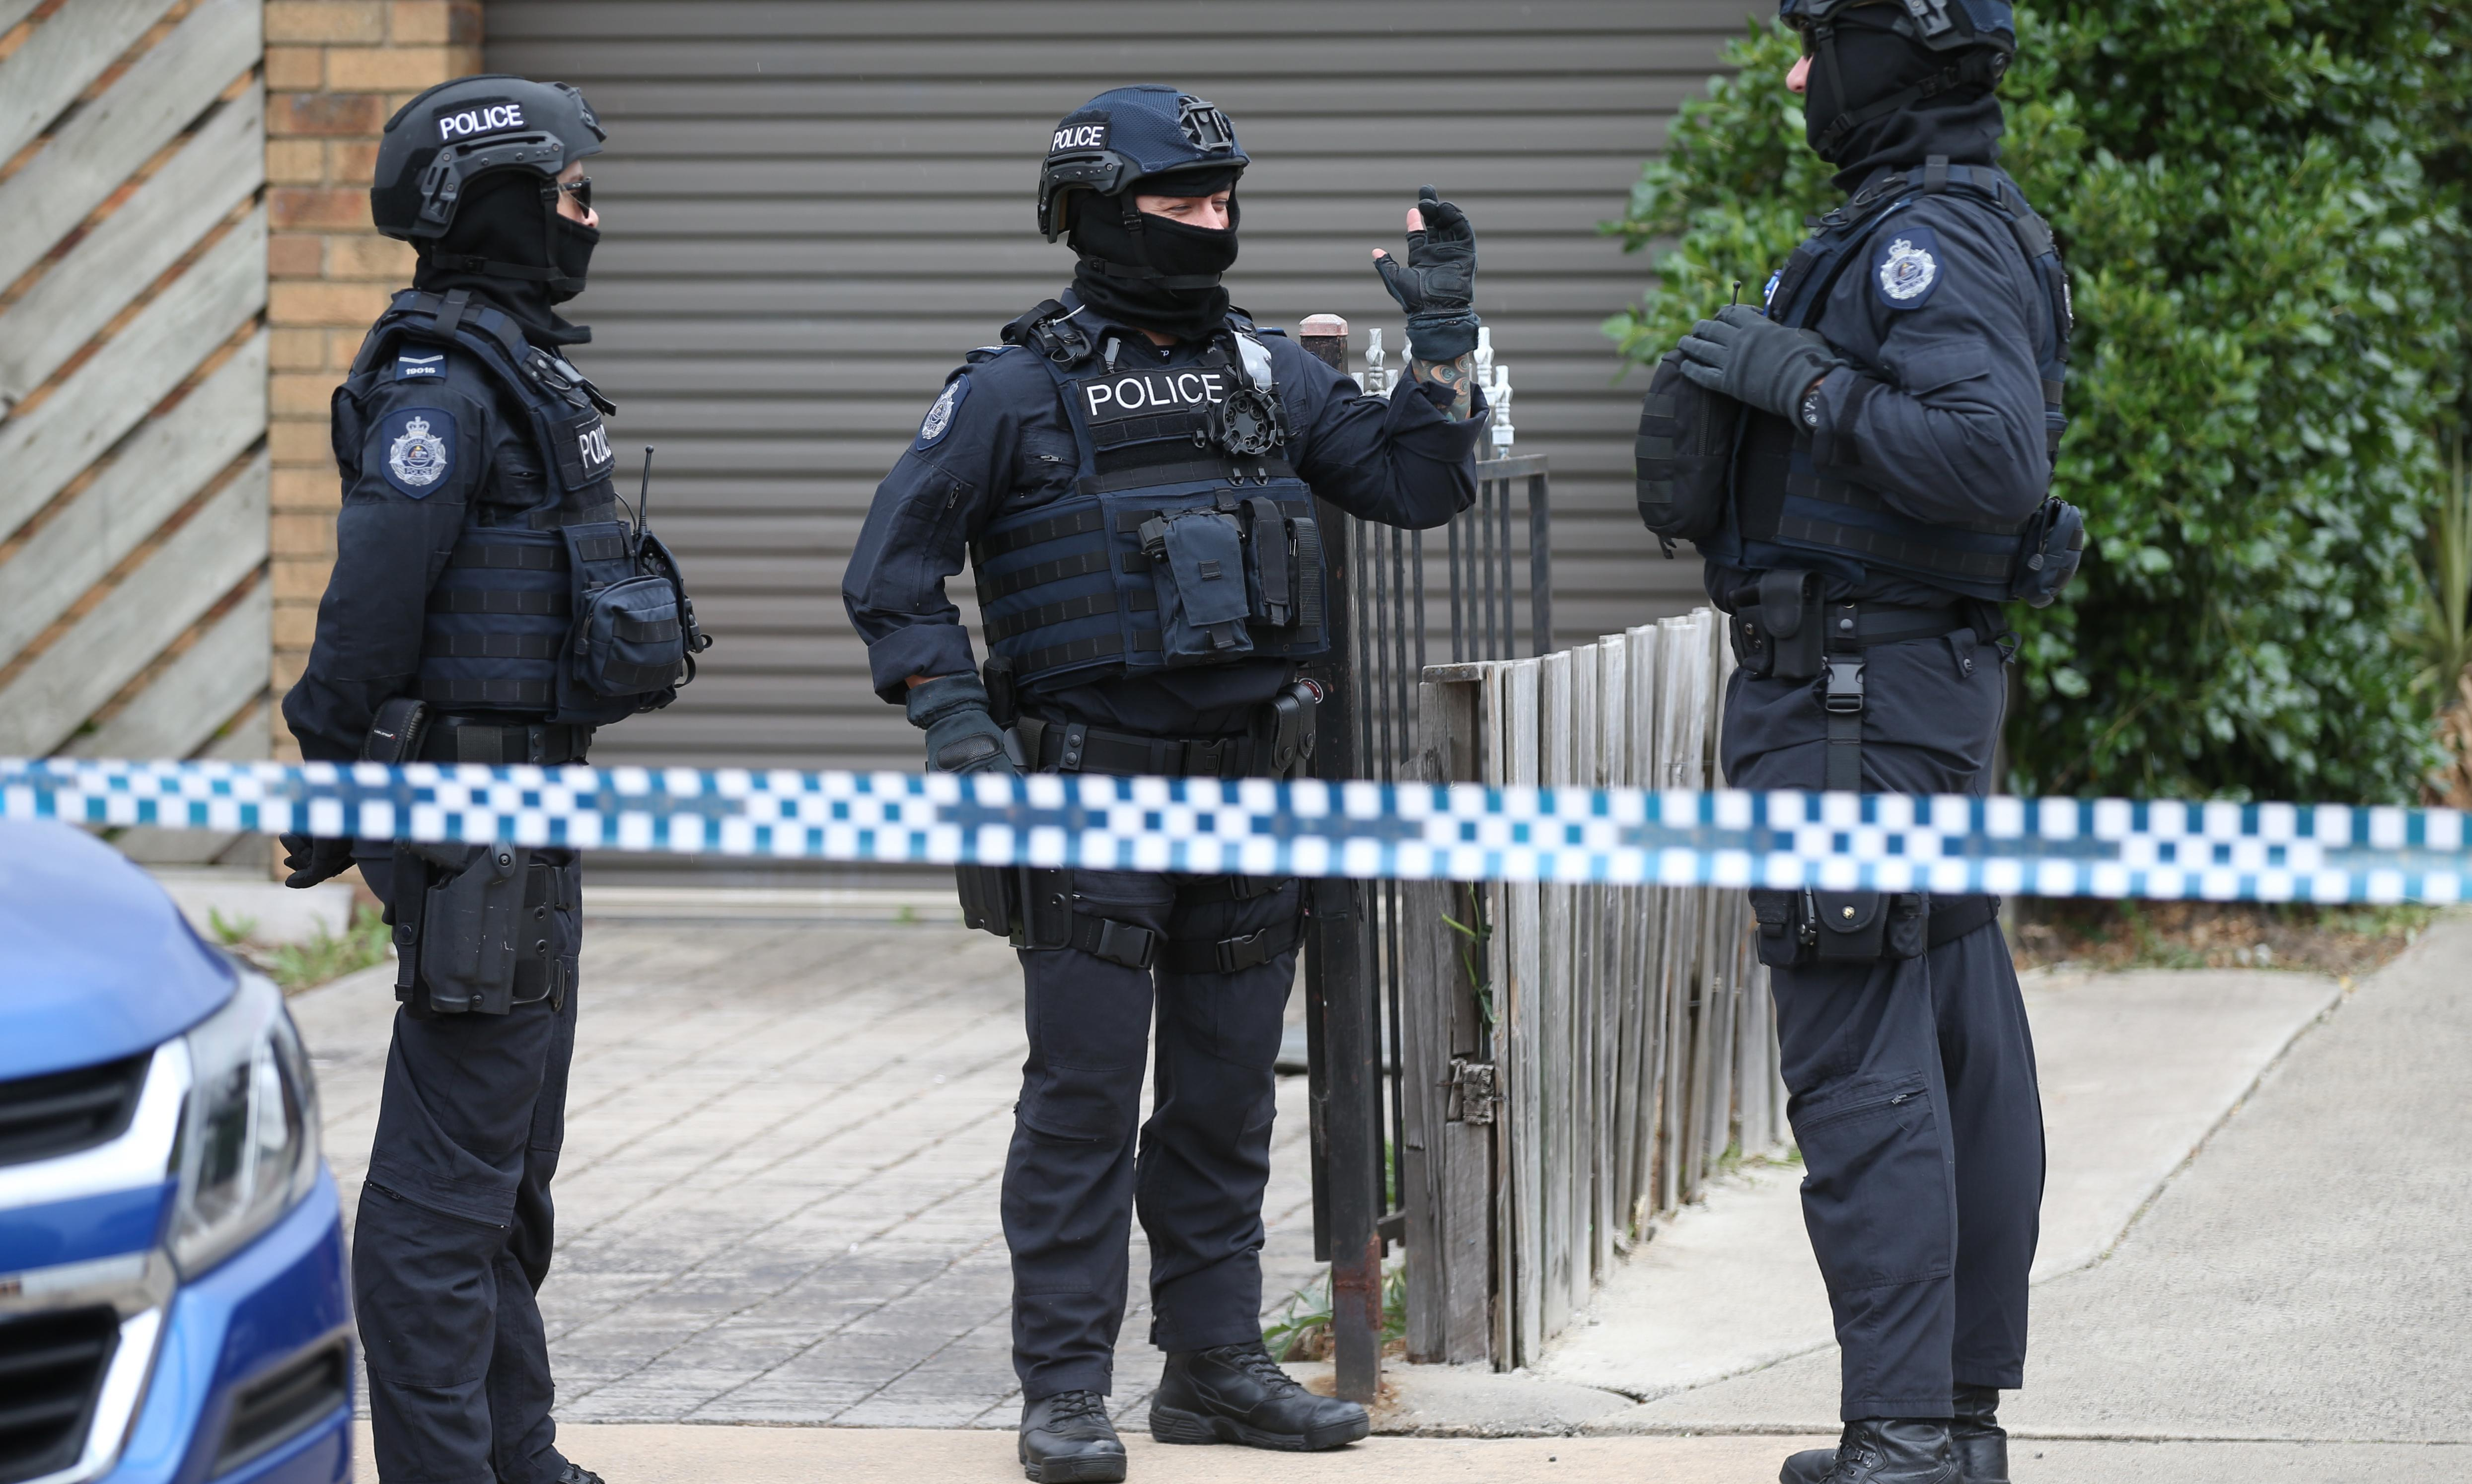 Australian jihadis: motivated by status and show no contrition for crimes